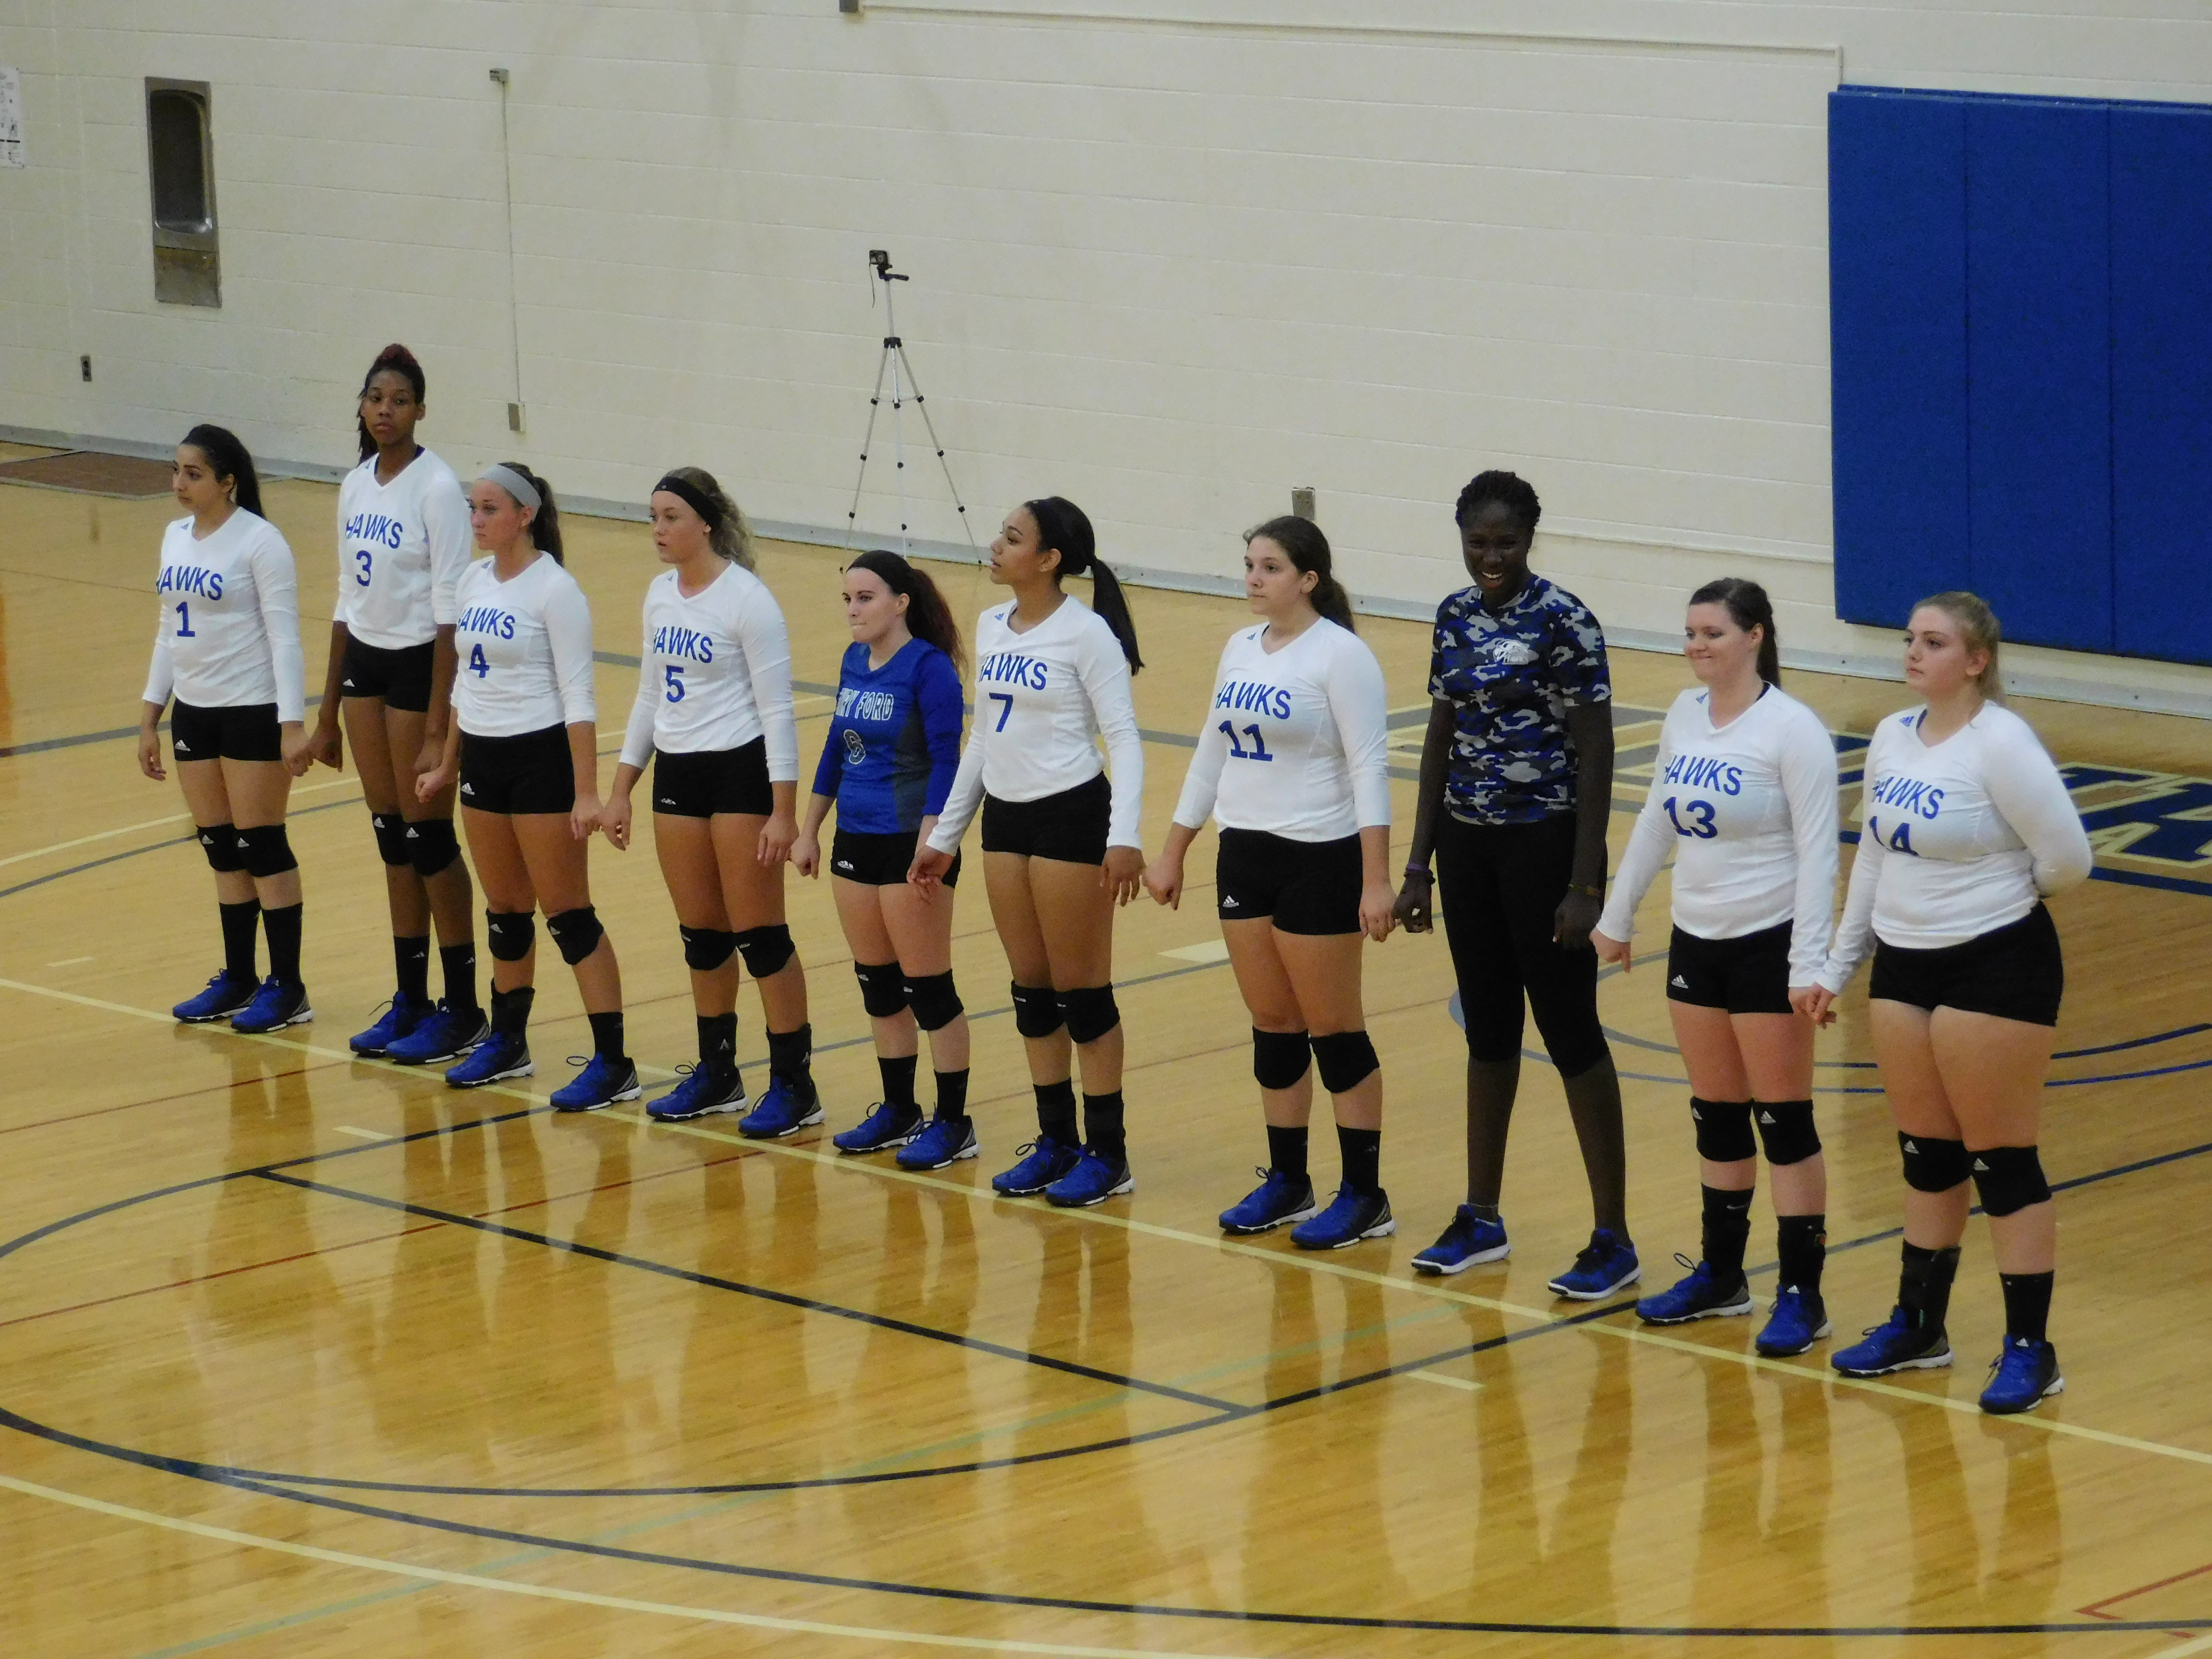 Hawks girls volleyball team lined up before the game.